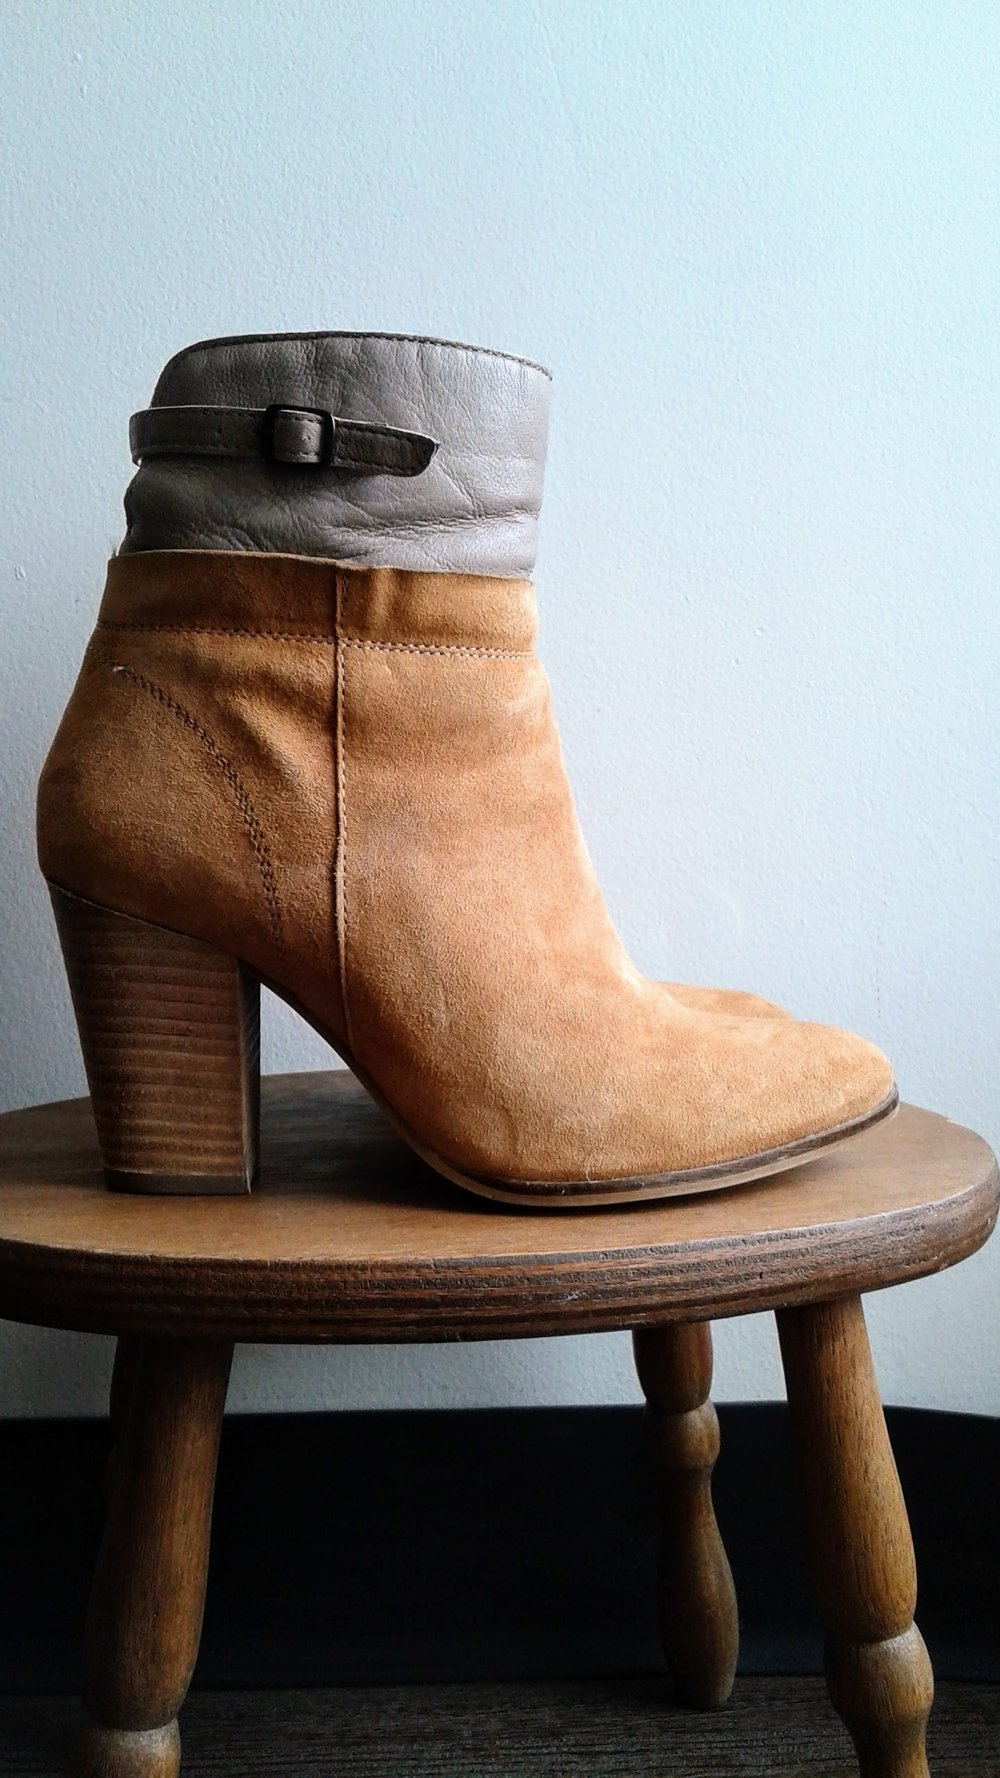 Seychelles boots; S8, $58